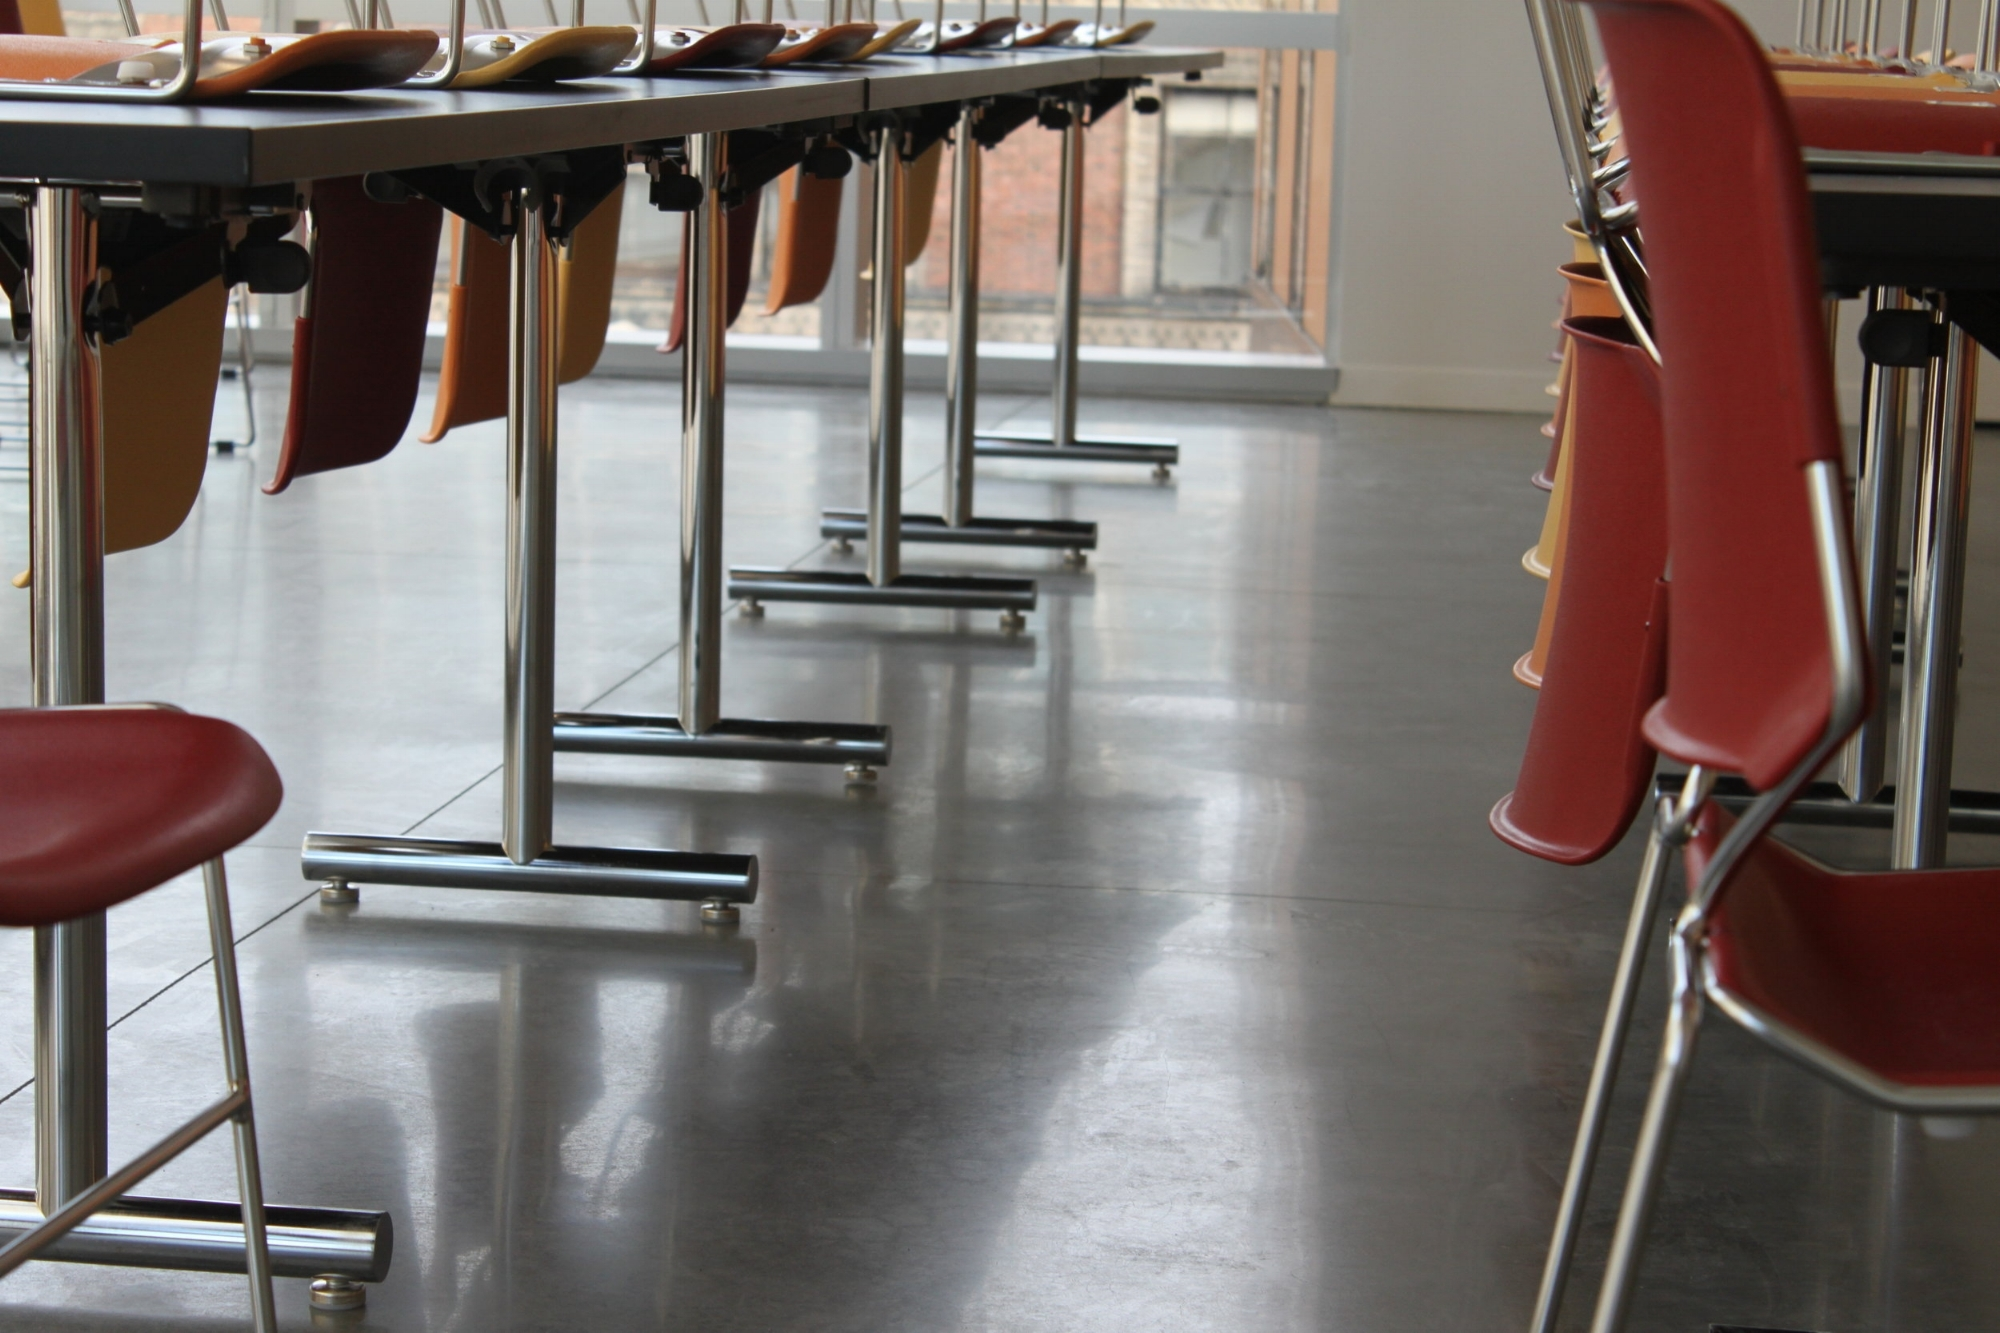 Get Real Surfaces polished concrete flooring